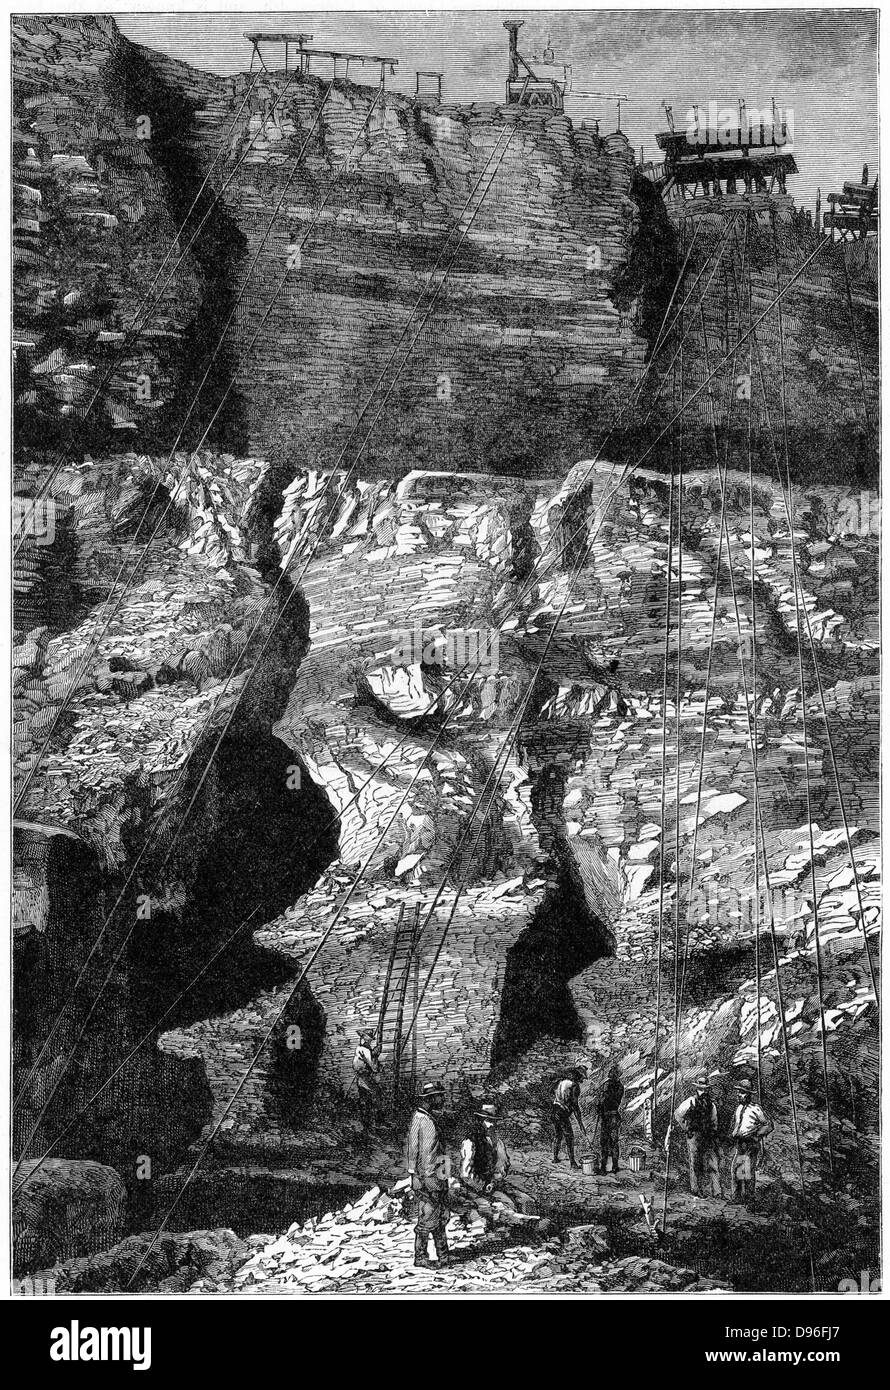 Diamond mine, Kimberley. In 1887 and 1888 Cecil Rhodes amalgamated the diamond mines around Kimberley, which included - Stock Image